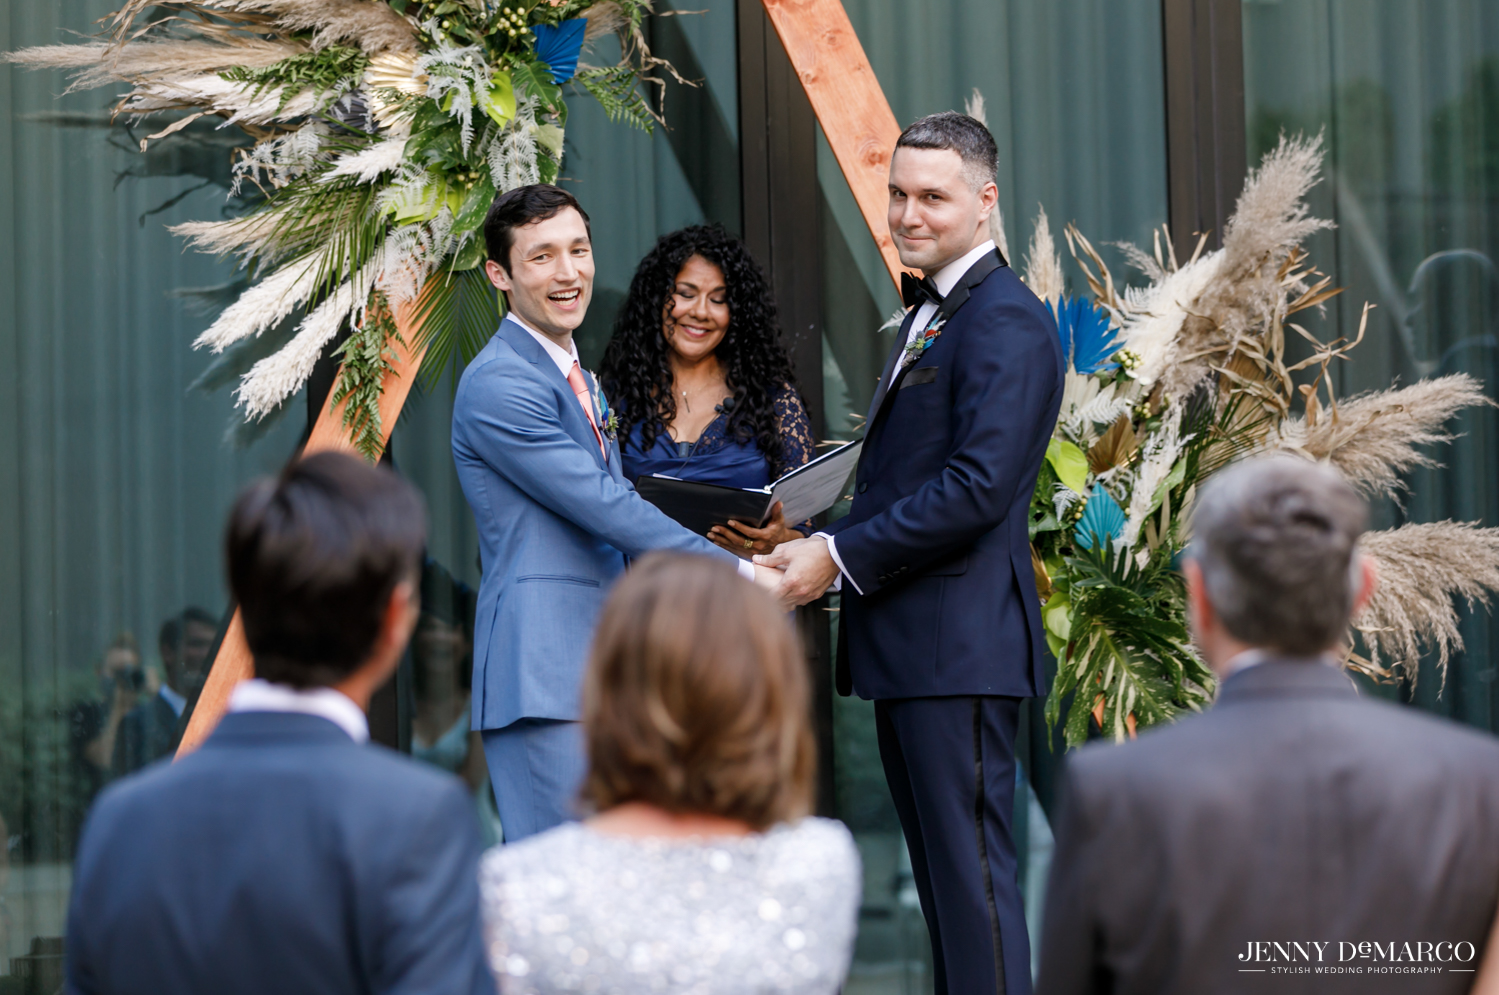 Grooms holding hands and smiling at parents before saying their vows